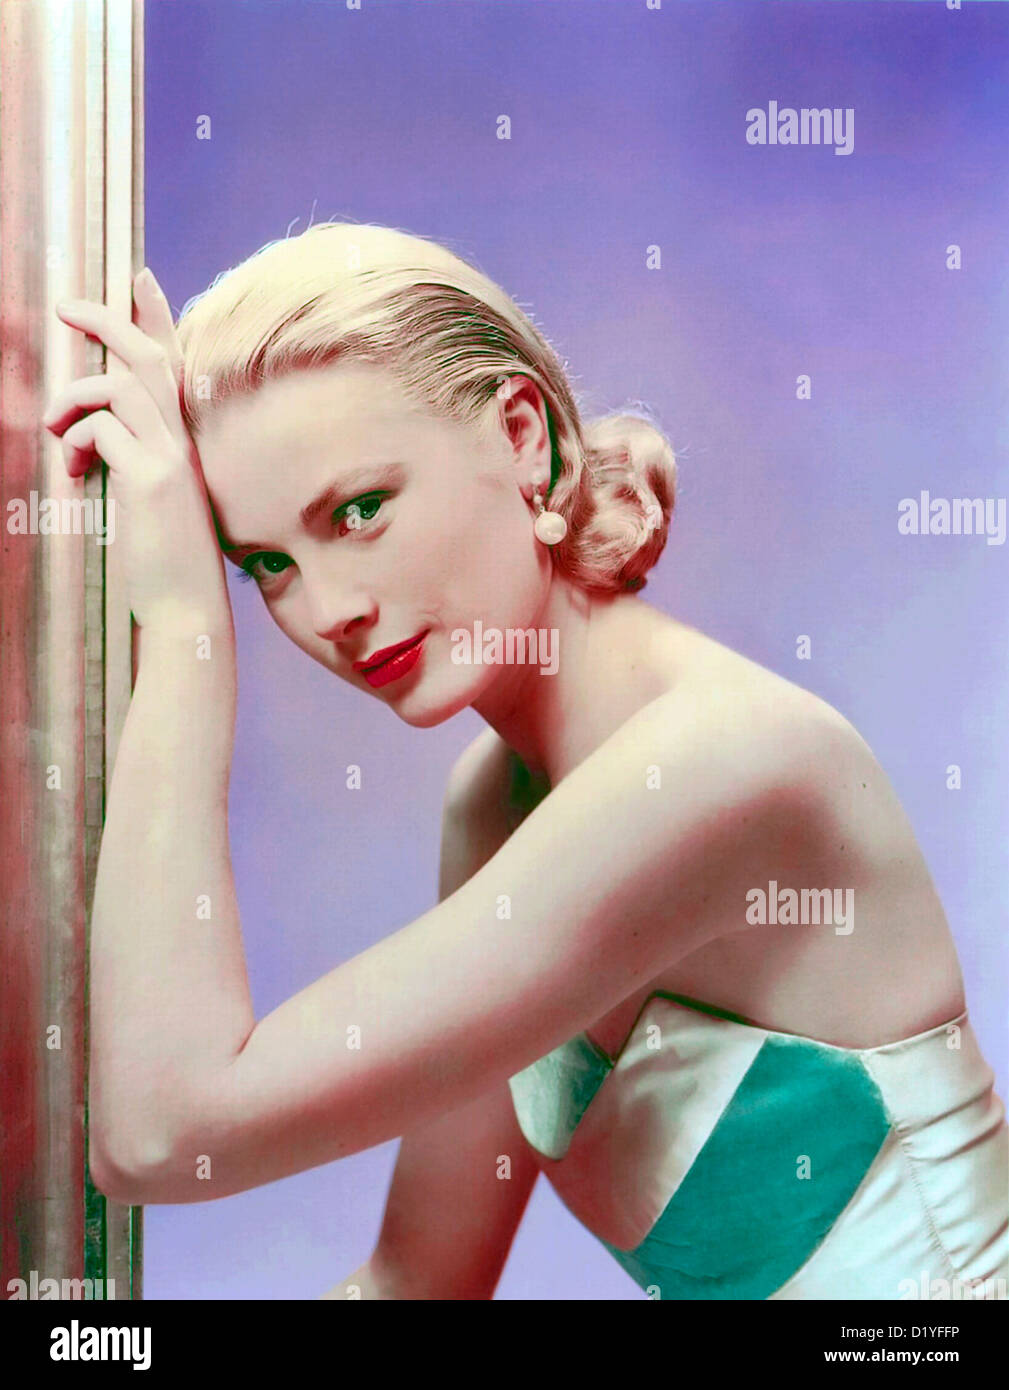 GRACE KELLY (1929-1982)  US film actress about 1955 - Stock Image